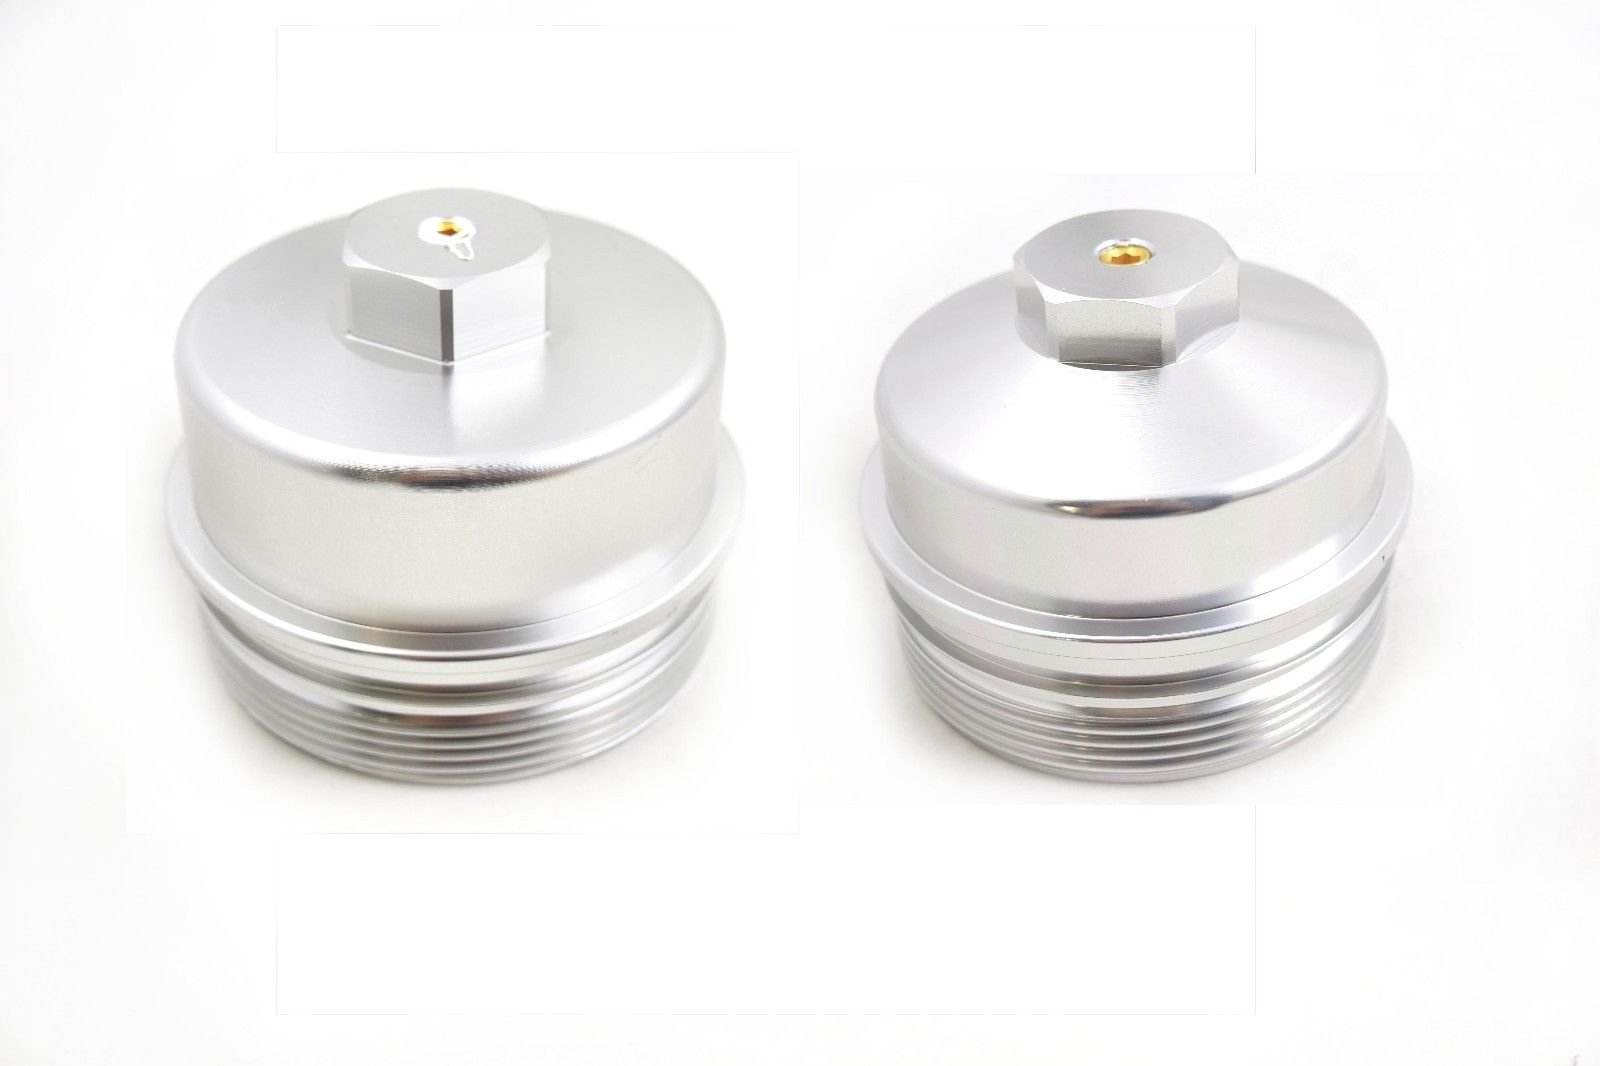 Polished Billet Aluminum Fuel & Oil Filter Caps 2008-2010 Ford 6.4L Powerstroke Diesel 6.4 by Rudy's Diesel